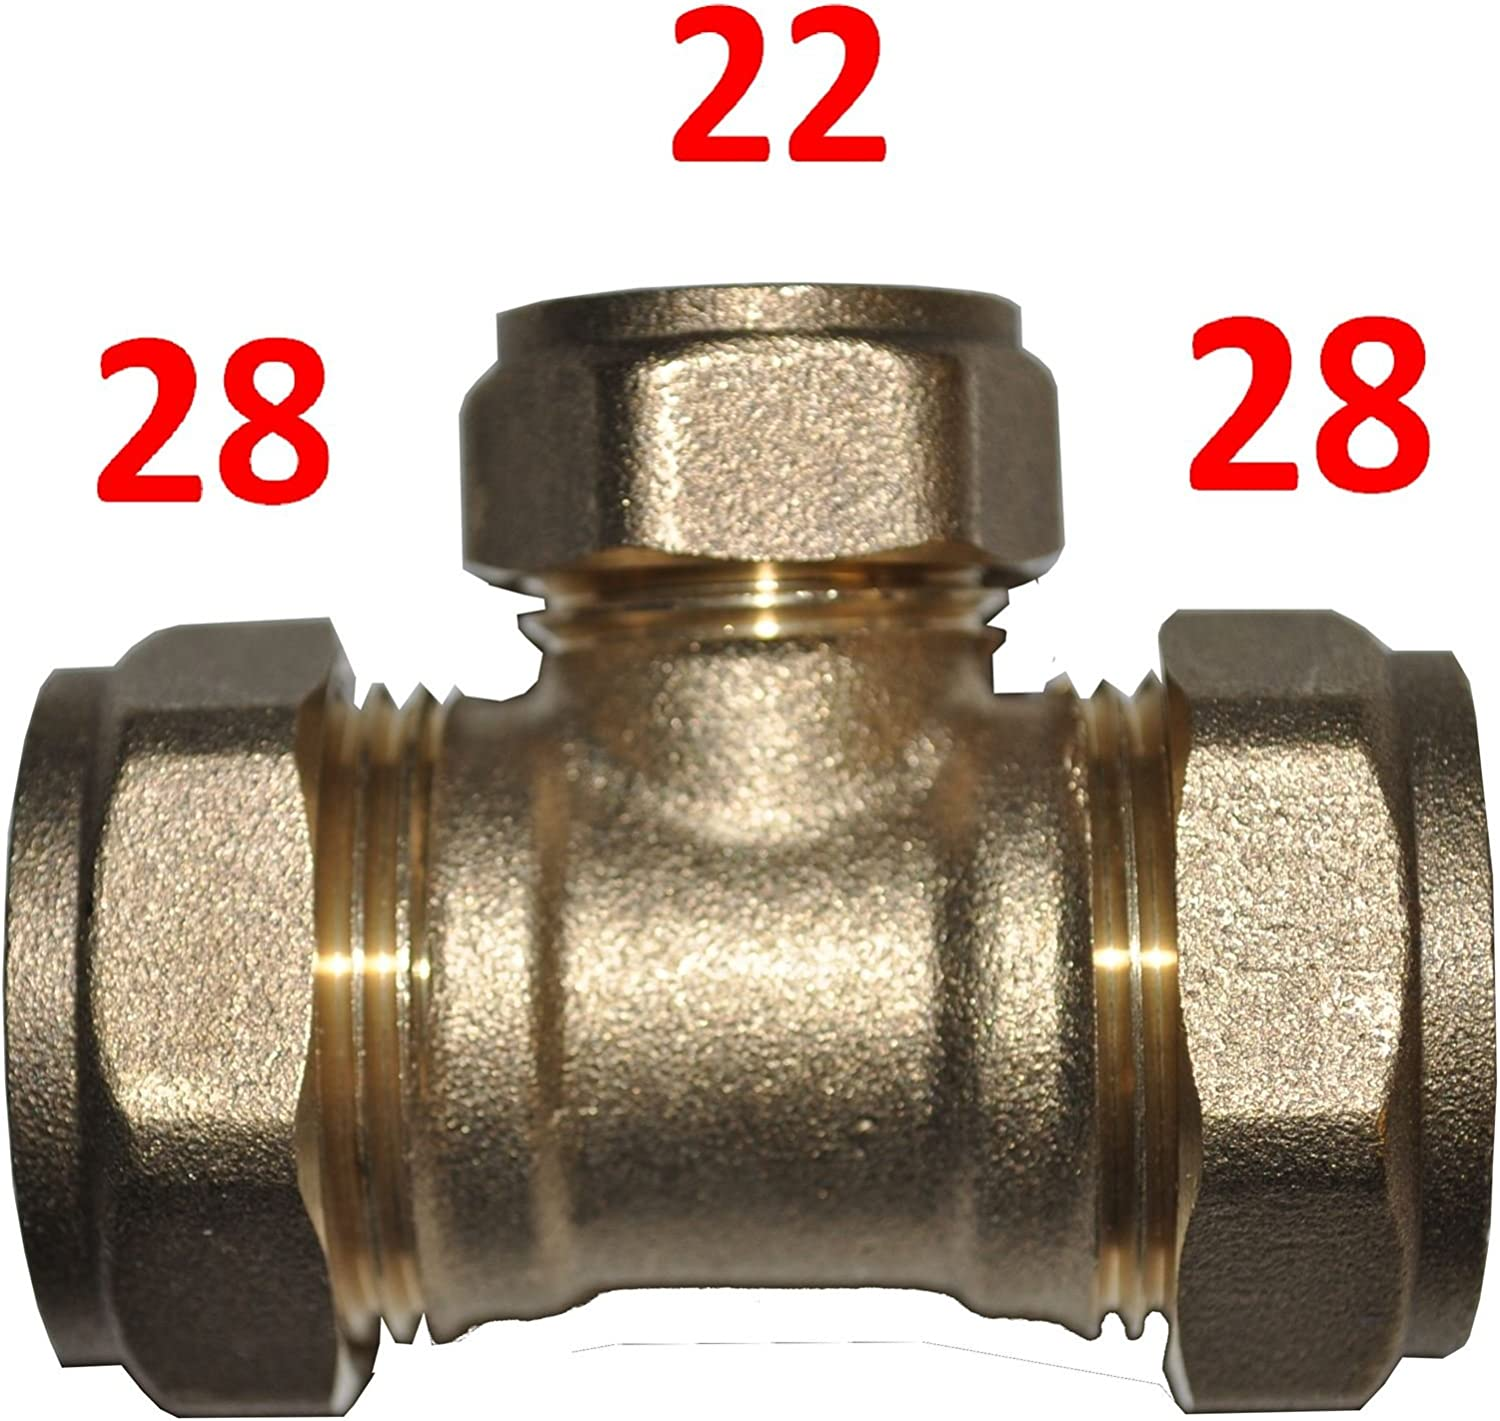 28mm x 28mm x 22mm Compression Reducing Tee